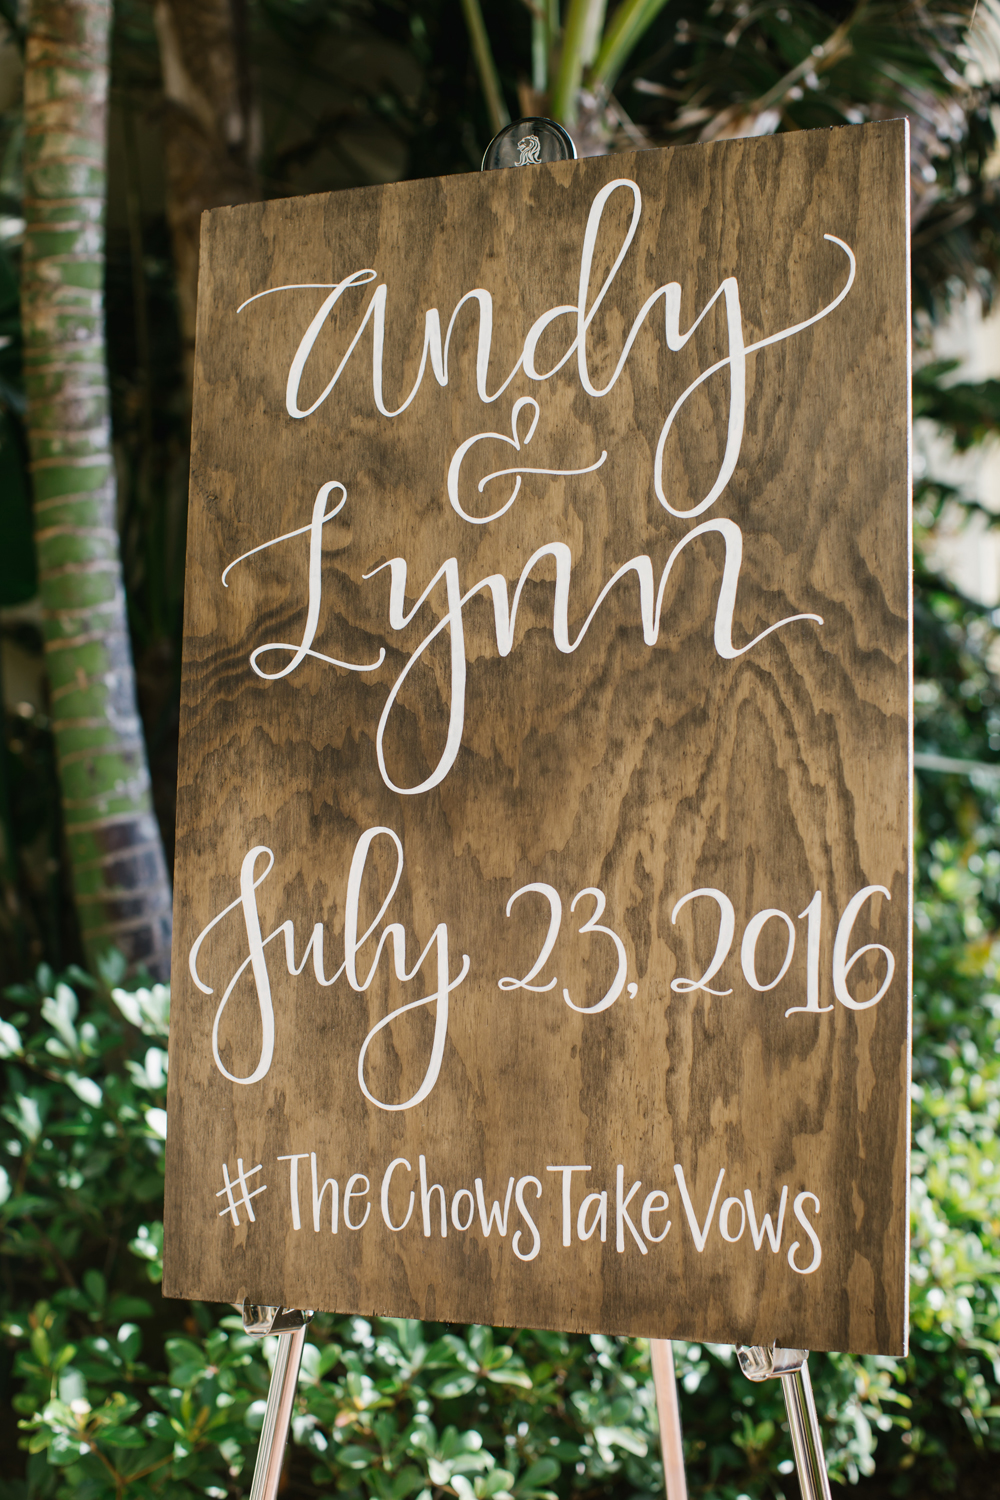 Wooden calligraphy sign